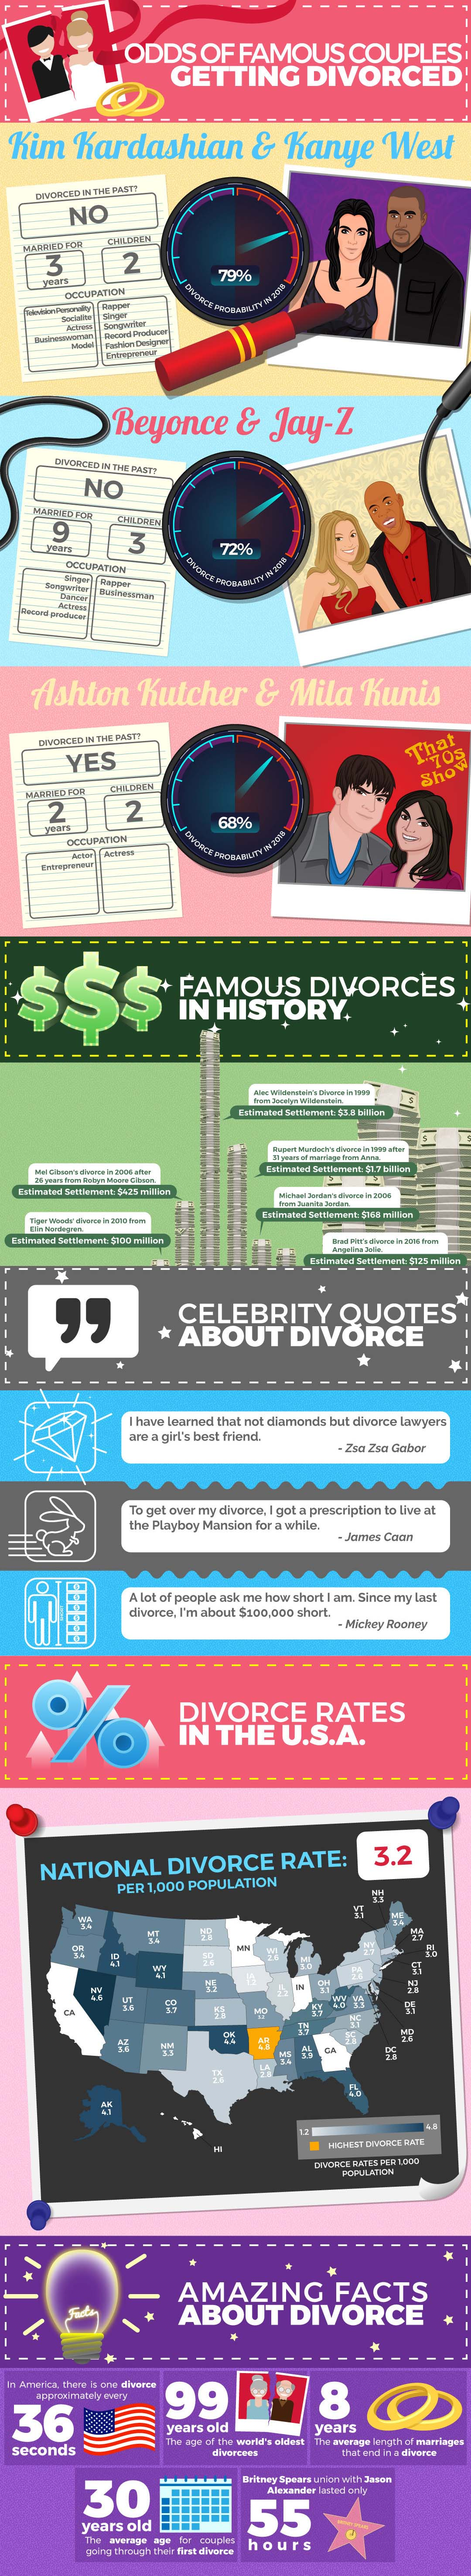 Odds of Famous Couples Getting Divorced